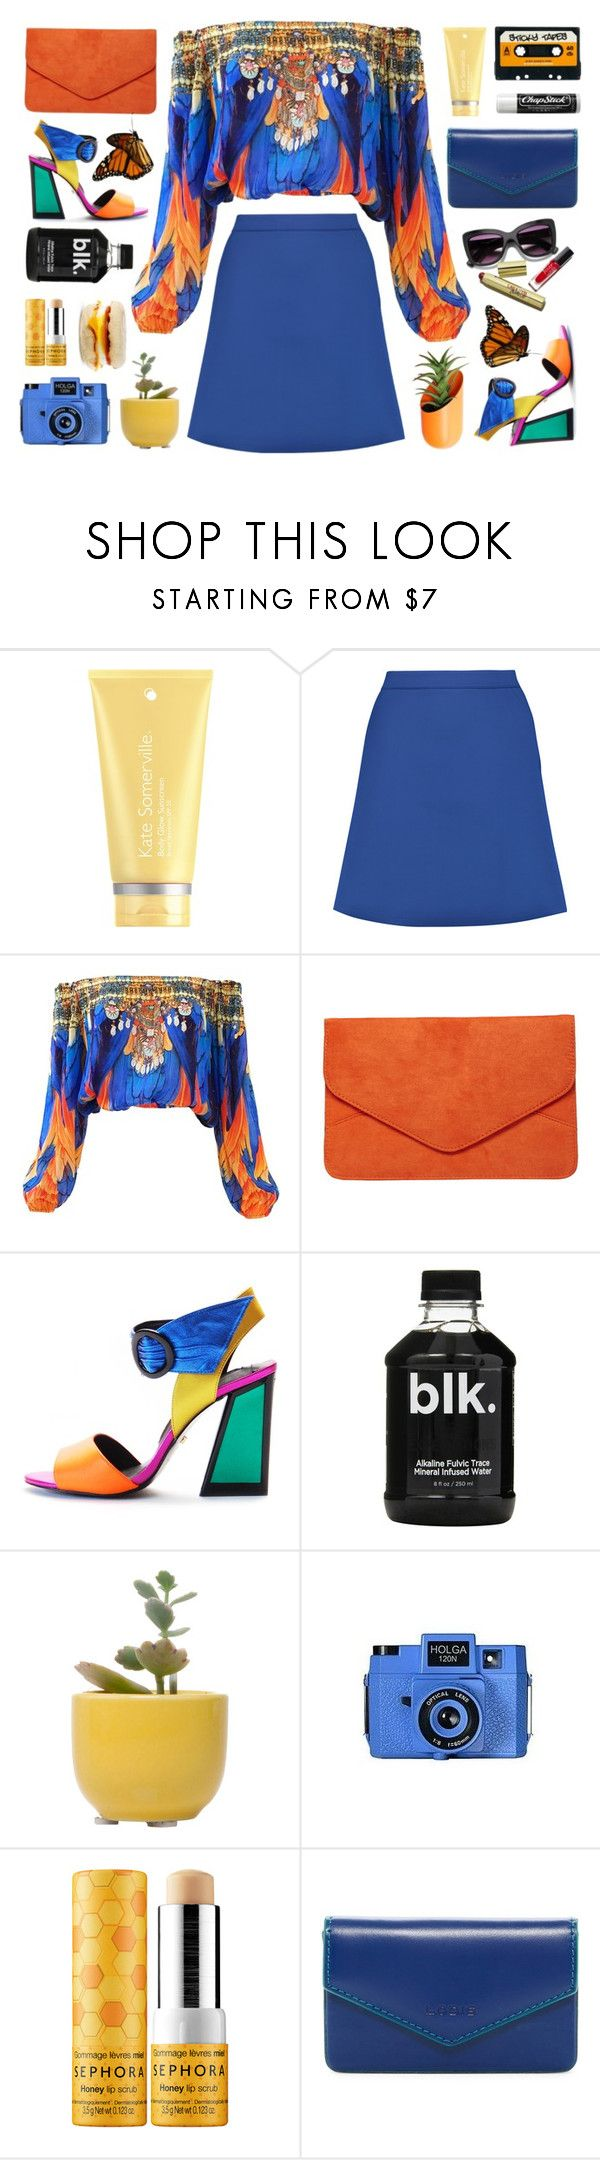 """""""Untitled #2039"""" by tinkertot ❤ liked on Polyvore featuring Kate Somerville, Être Cécile, Dorothy Perkins, Kat Maconie, Dot & Bo, Holga, Sephora Collection, Lodis, ASOS and Chapstick"""